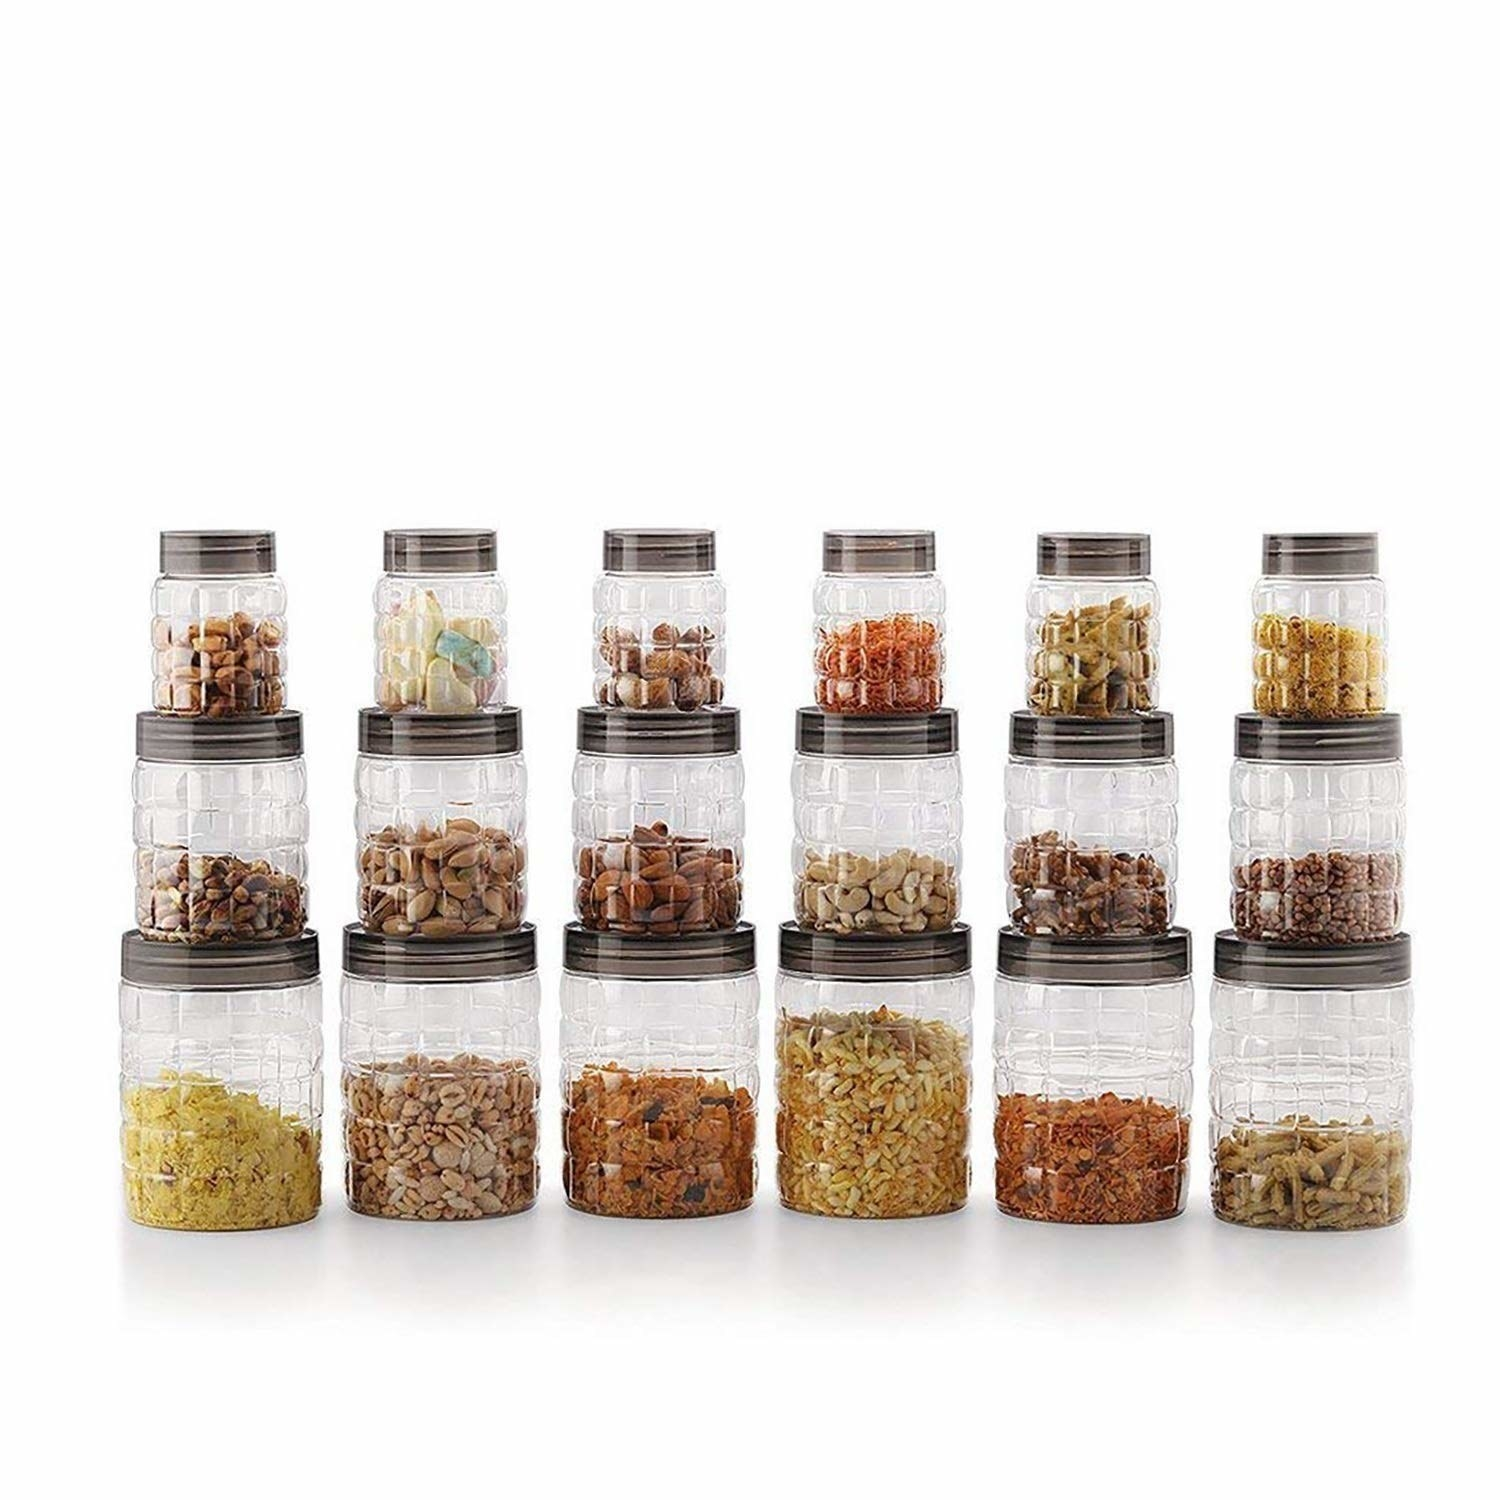 An 18 piece canister set with food items in it